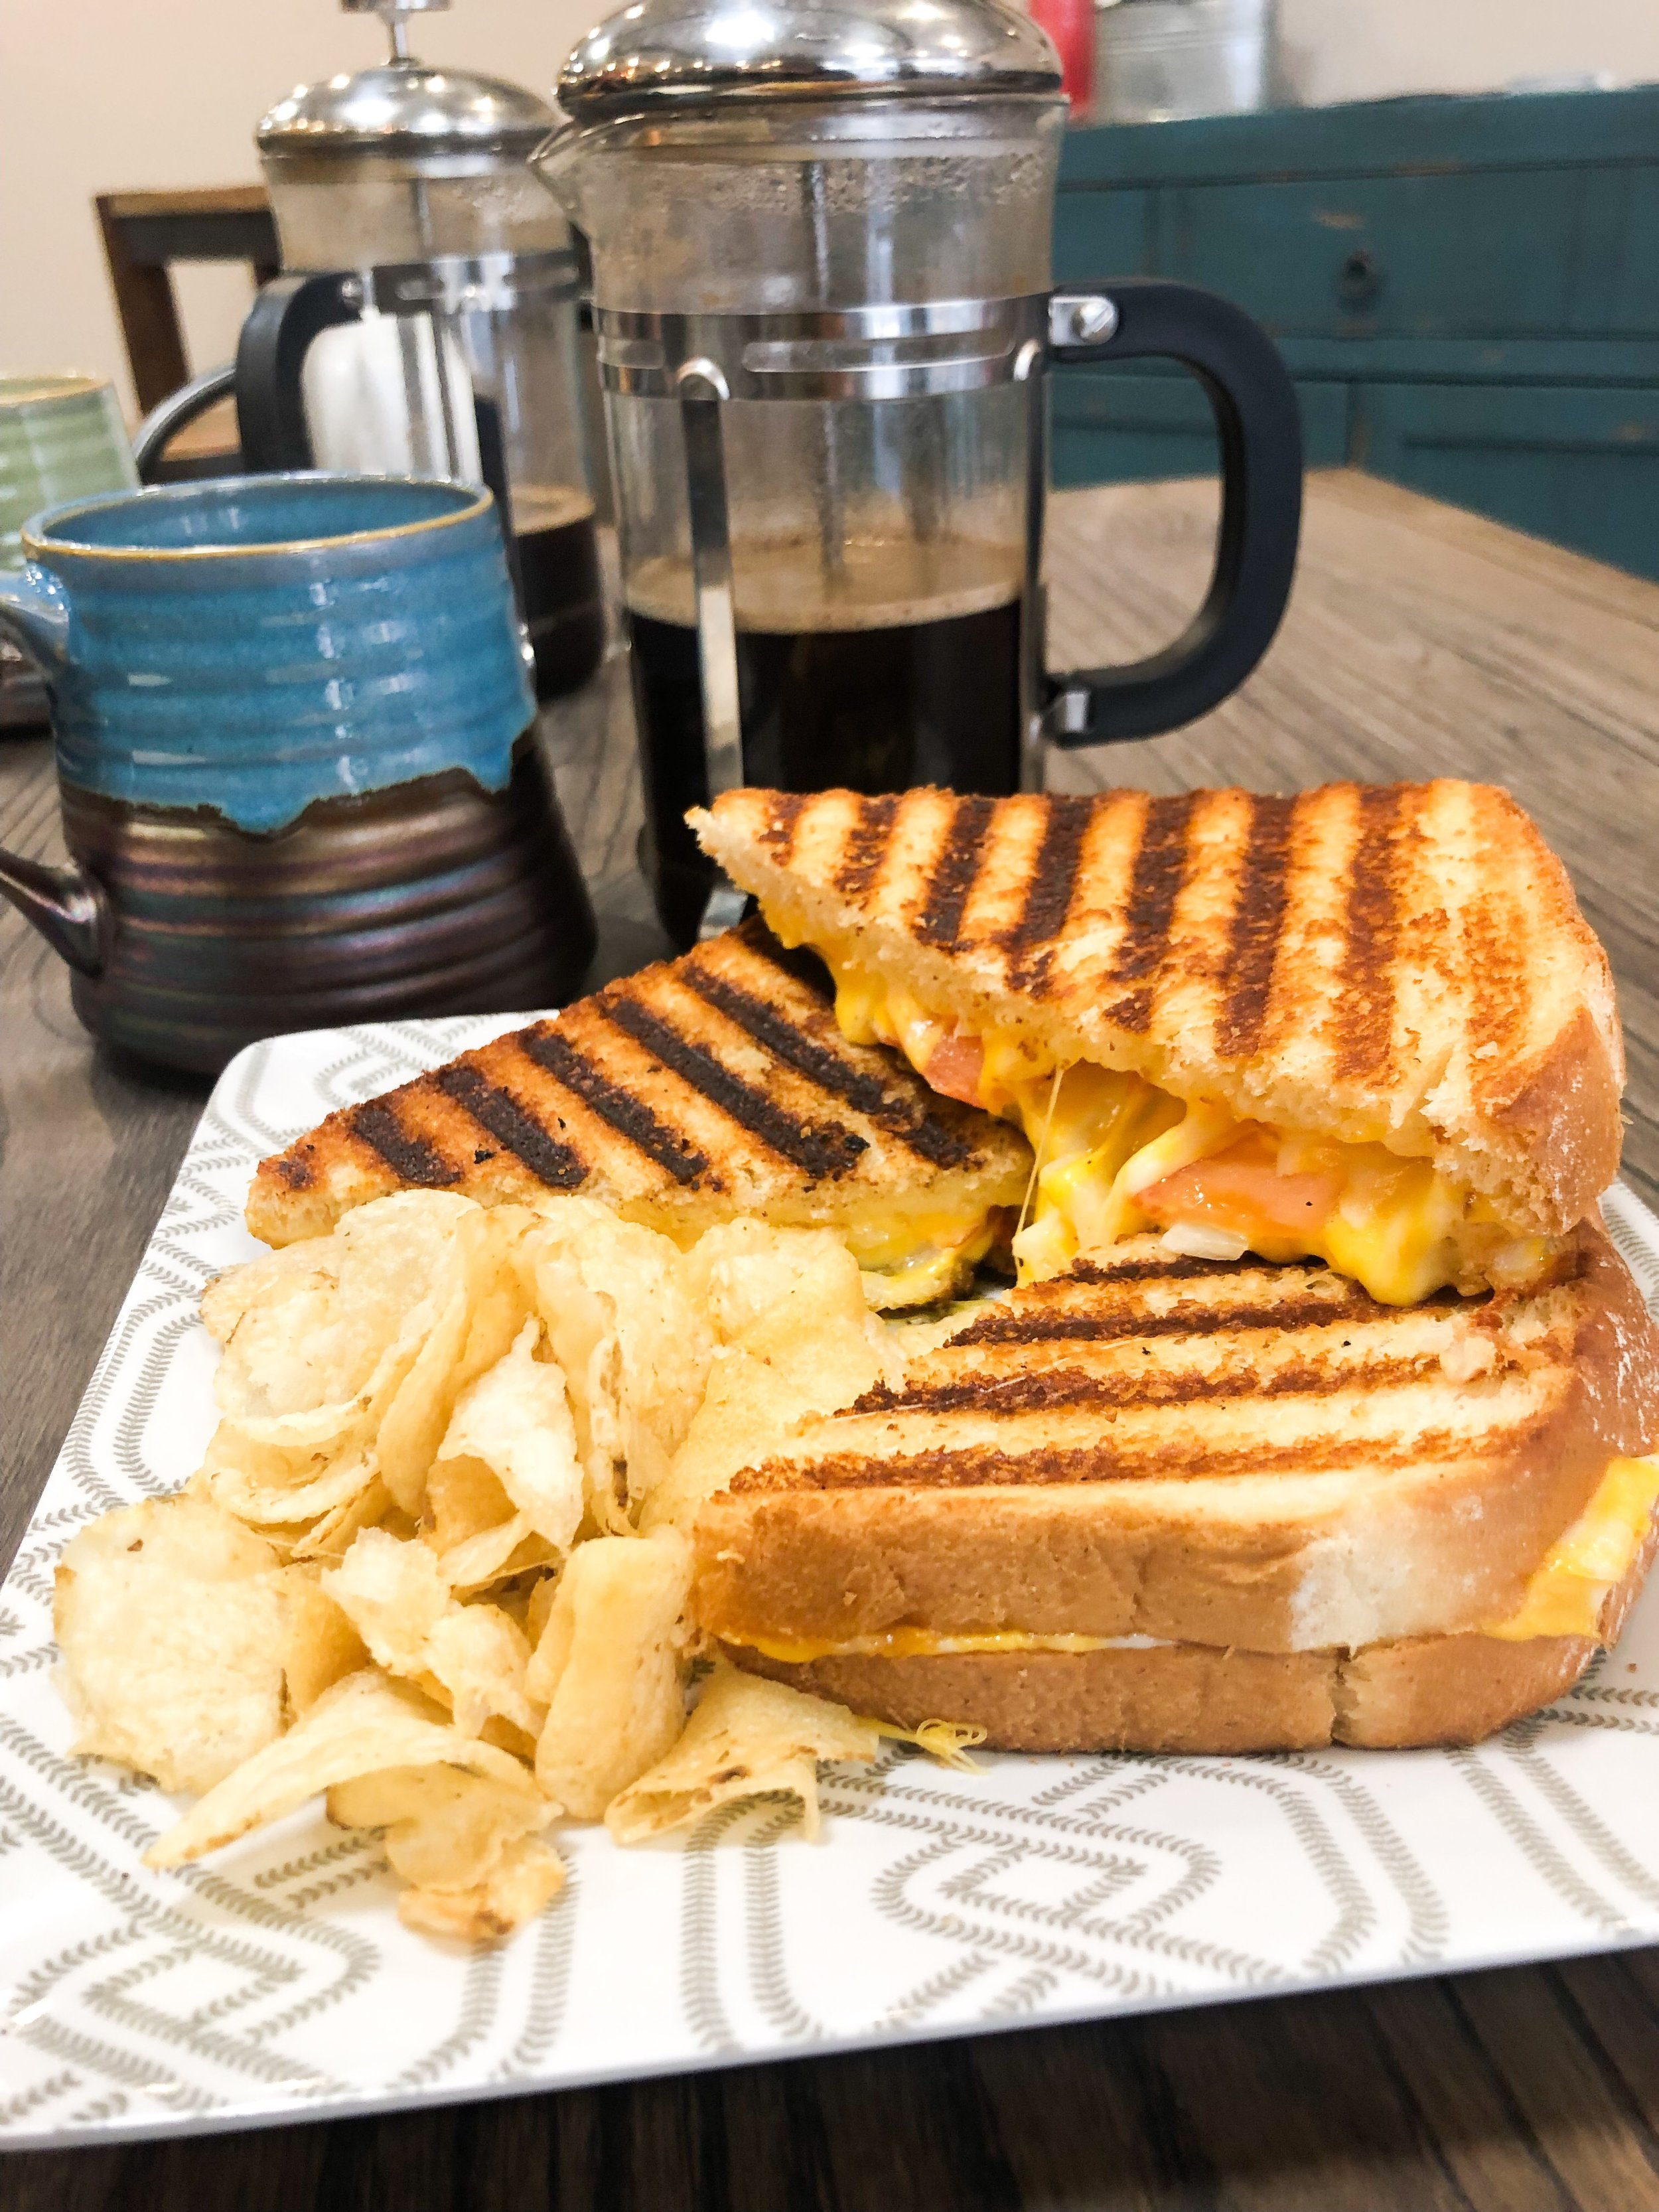 The Post-Segment Dunbri's Tomato Onion Grilled Cheese Sandwich & French Press Coffee.